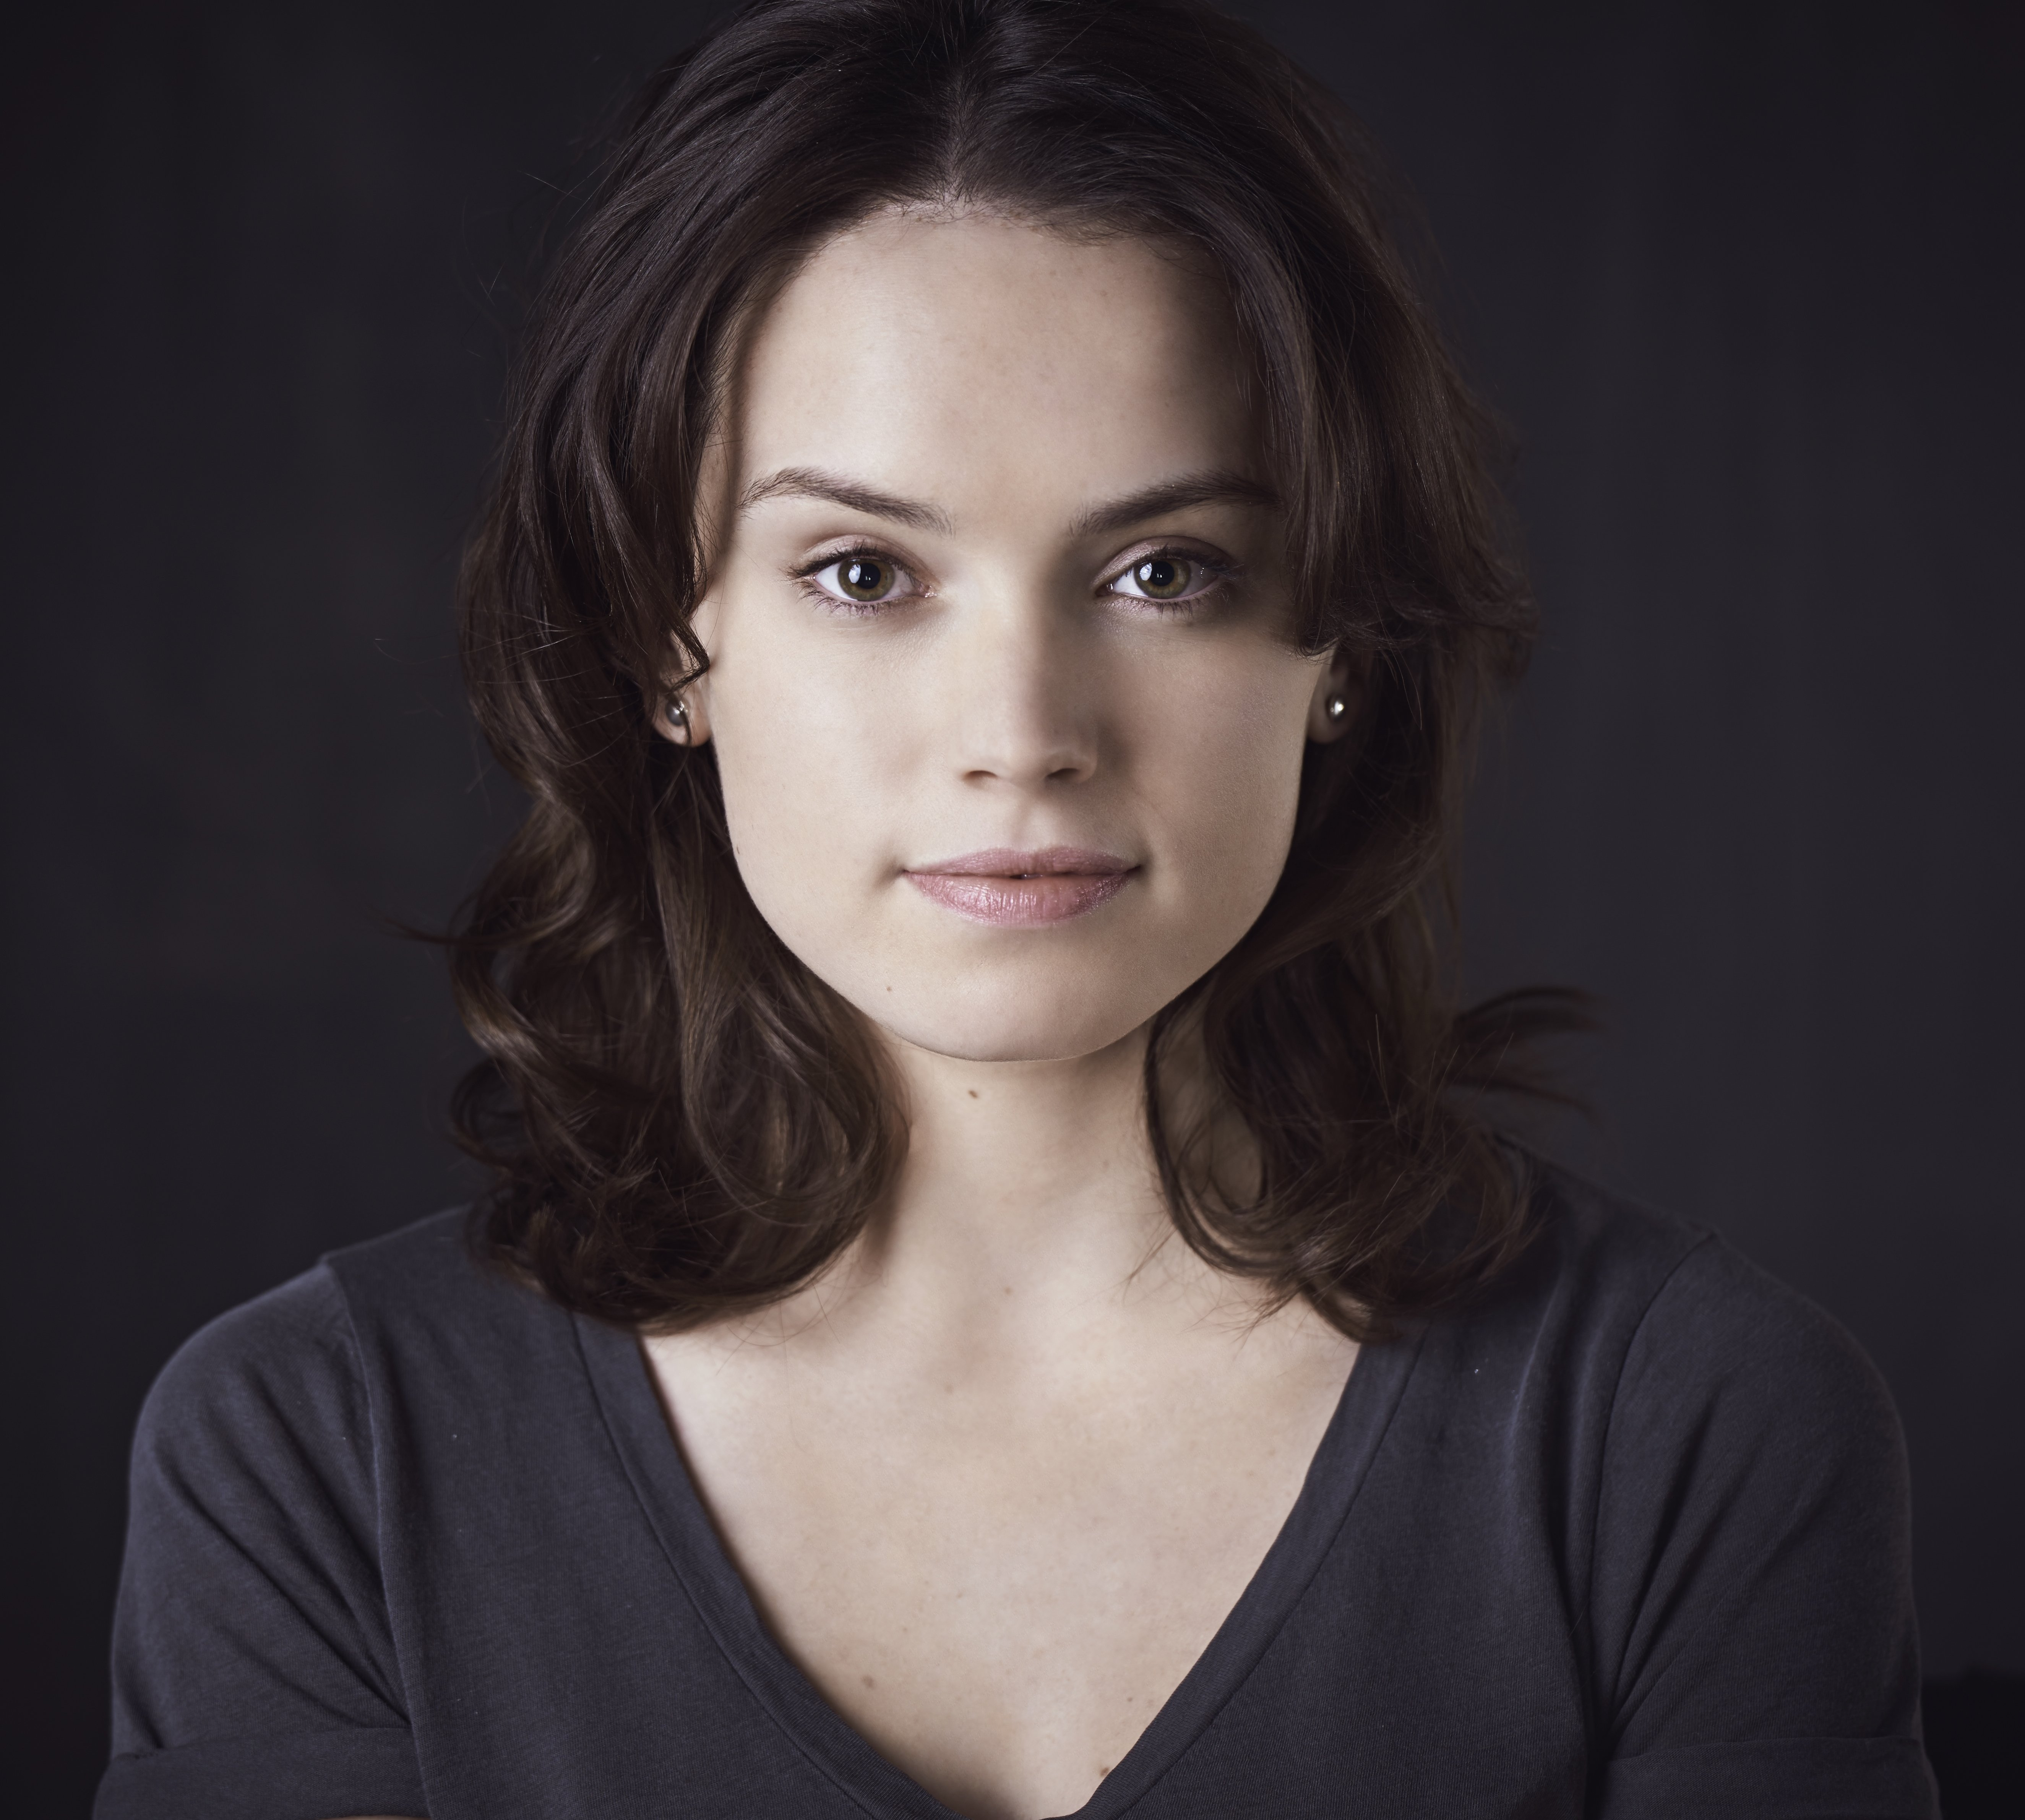 picture Daisy Ridley (born 1992)